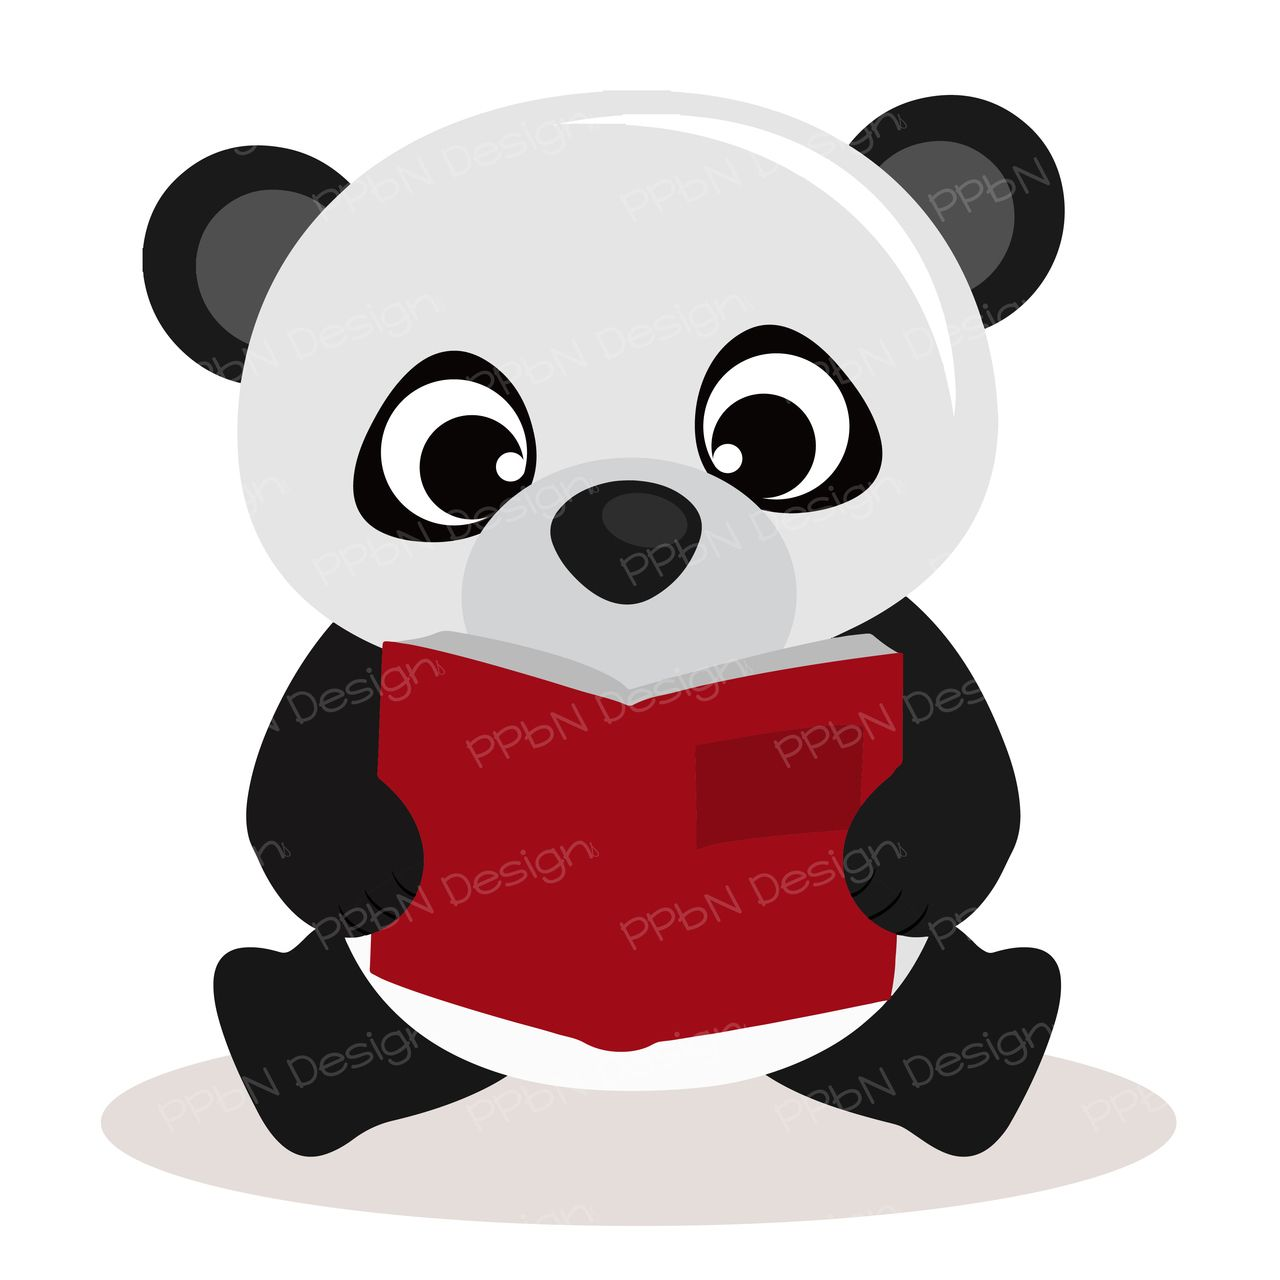 PPbN Designs - Reading Panda Bear, $0.00 (http://www.ppbndesigns.com ...